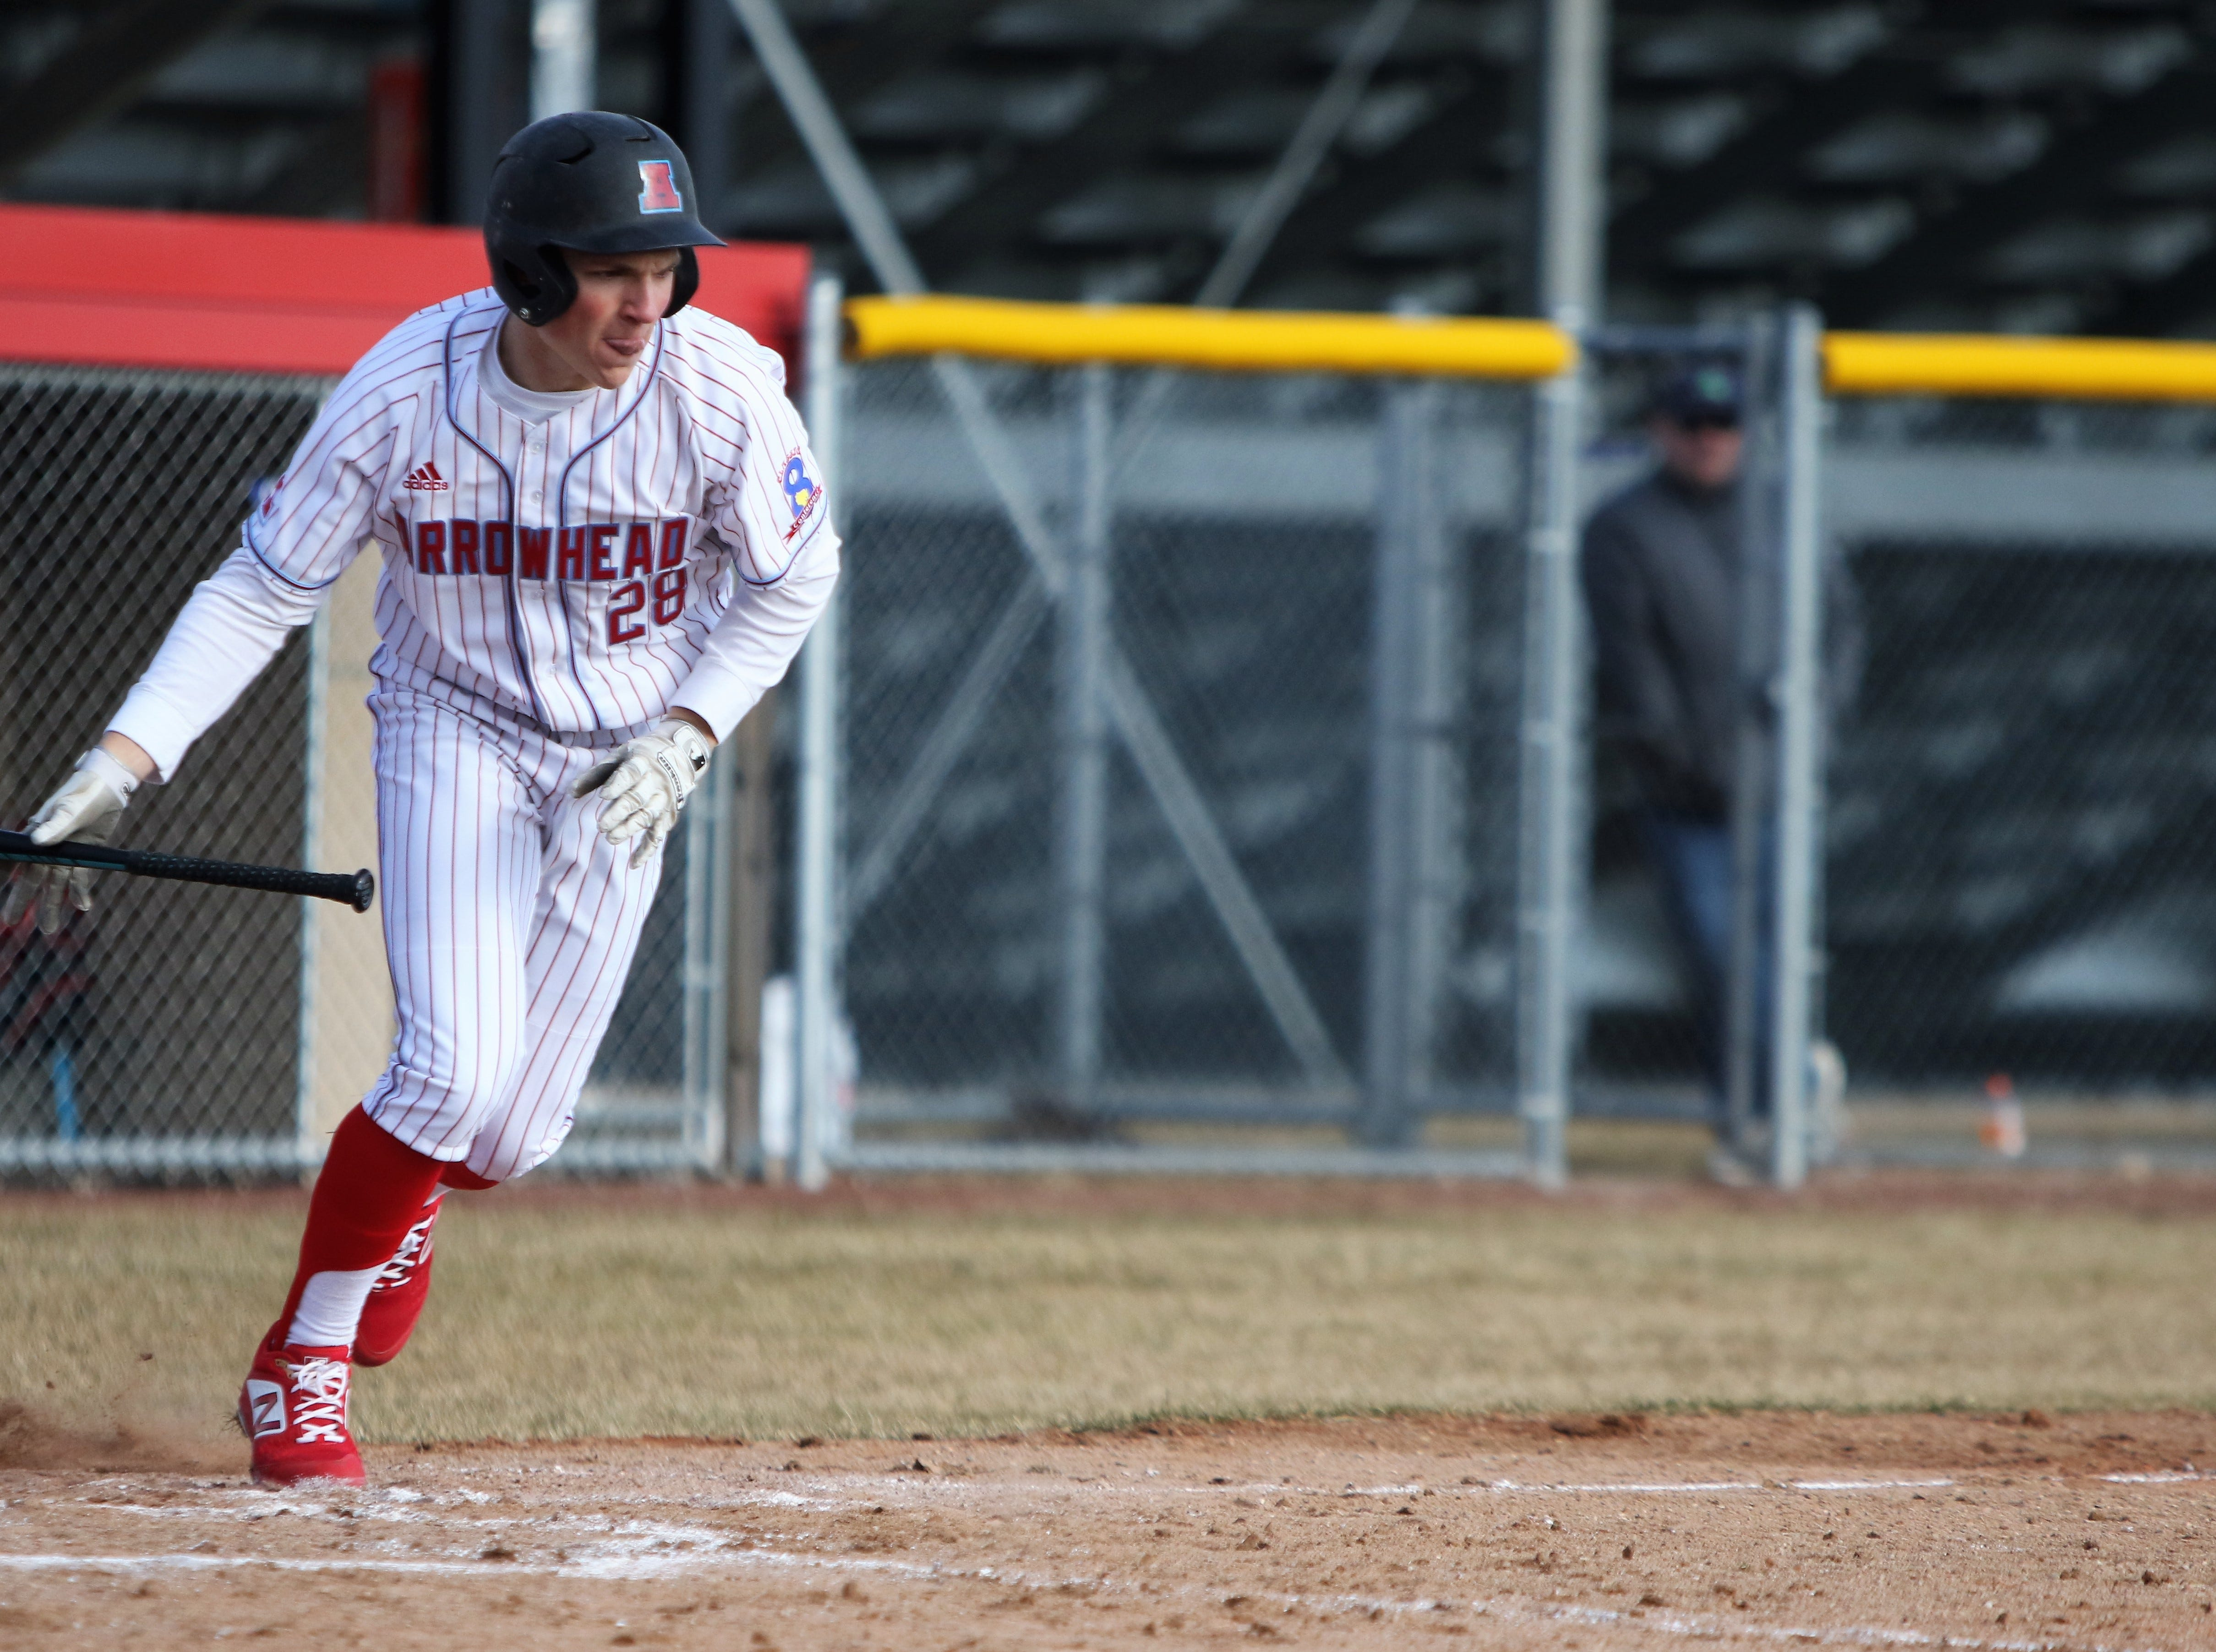 Tyler Loebel takes off toward first base after dropping down a bunt against Catholic Memorial on April 2, 2019.